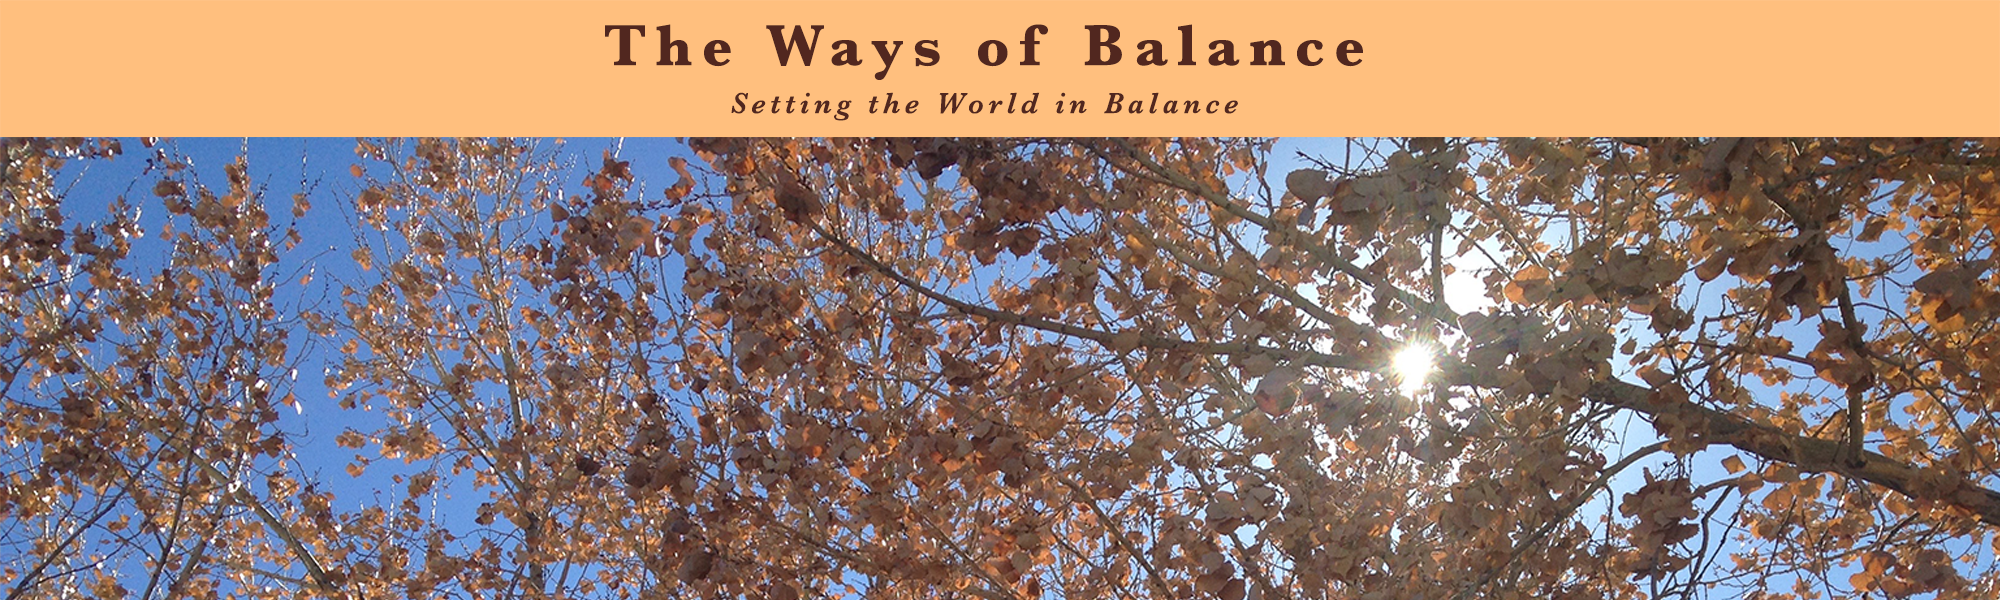 The Ways of Balance